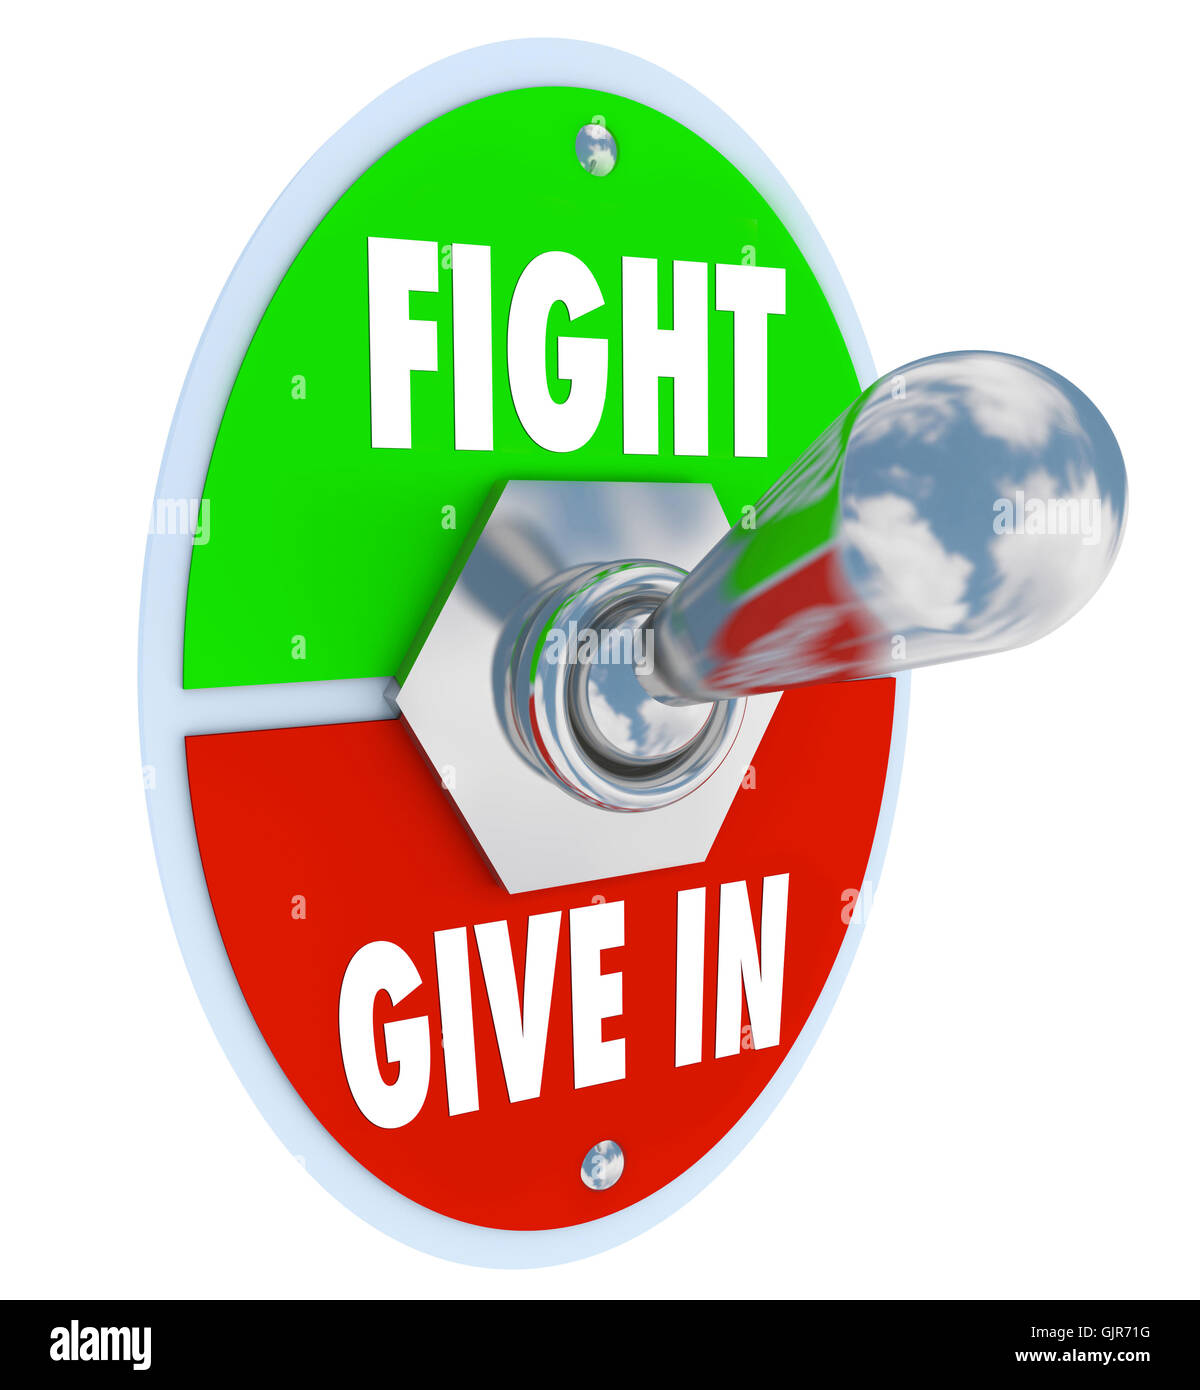 Fight Vs Give In - Flip the Switch to Take a Stand for Your Beli - Stock Image